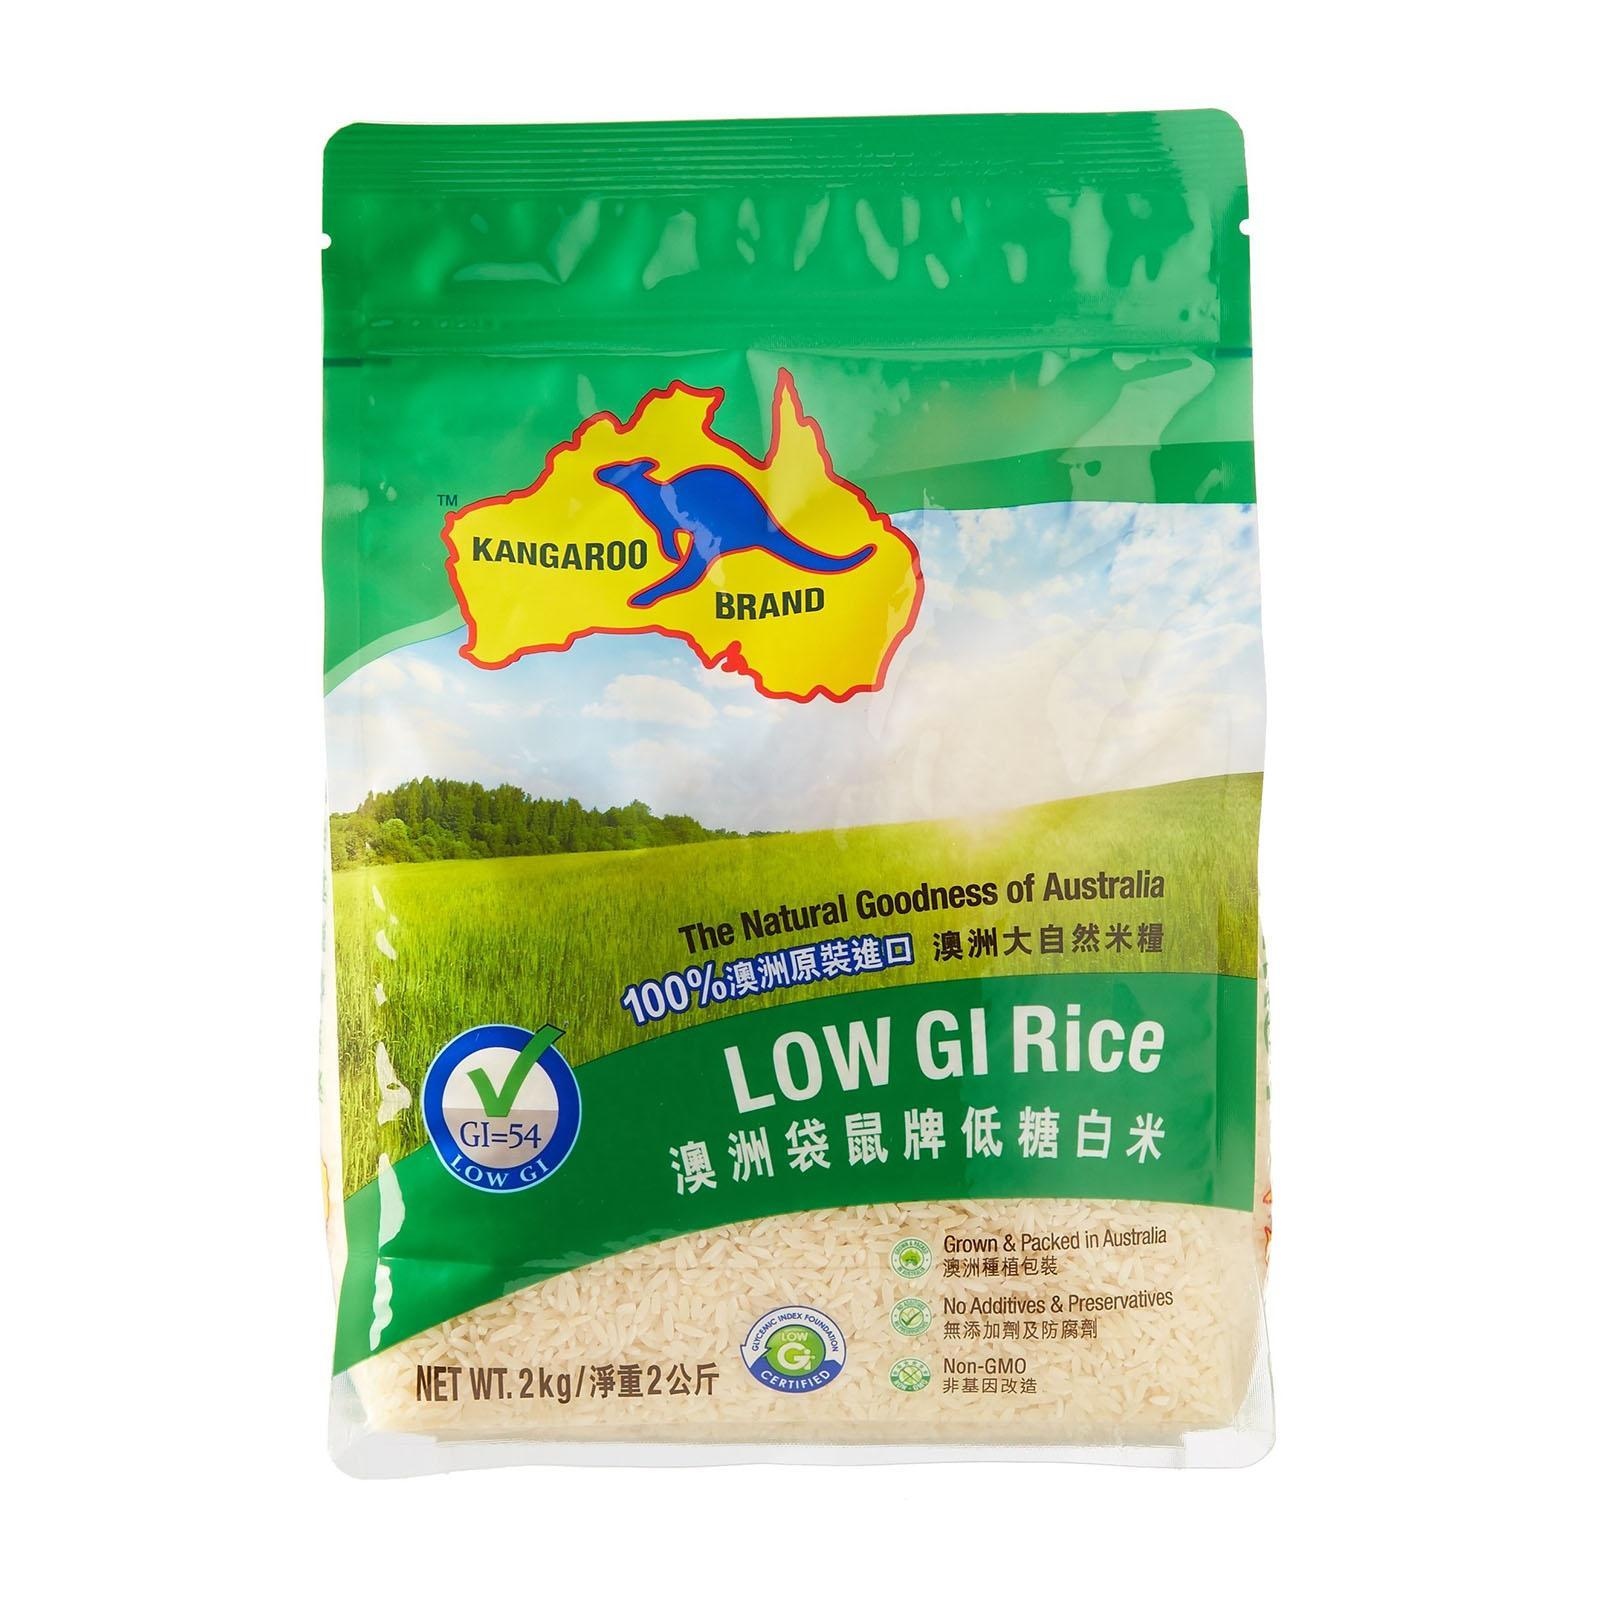 Kangaroo Australian Low Gi Rice By Redmart.